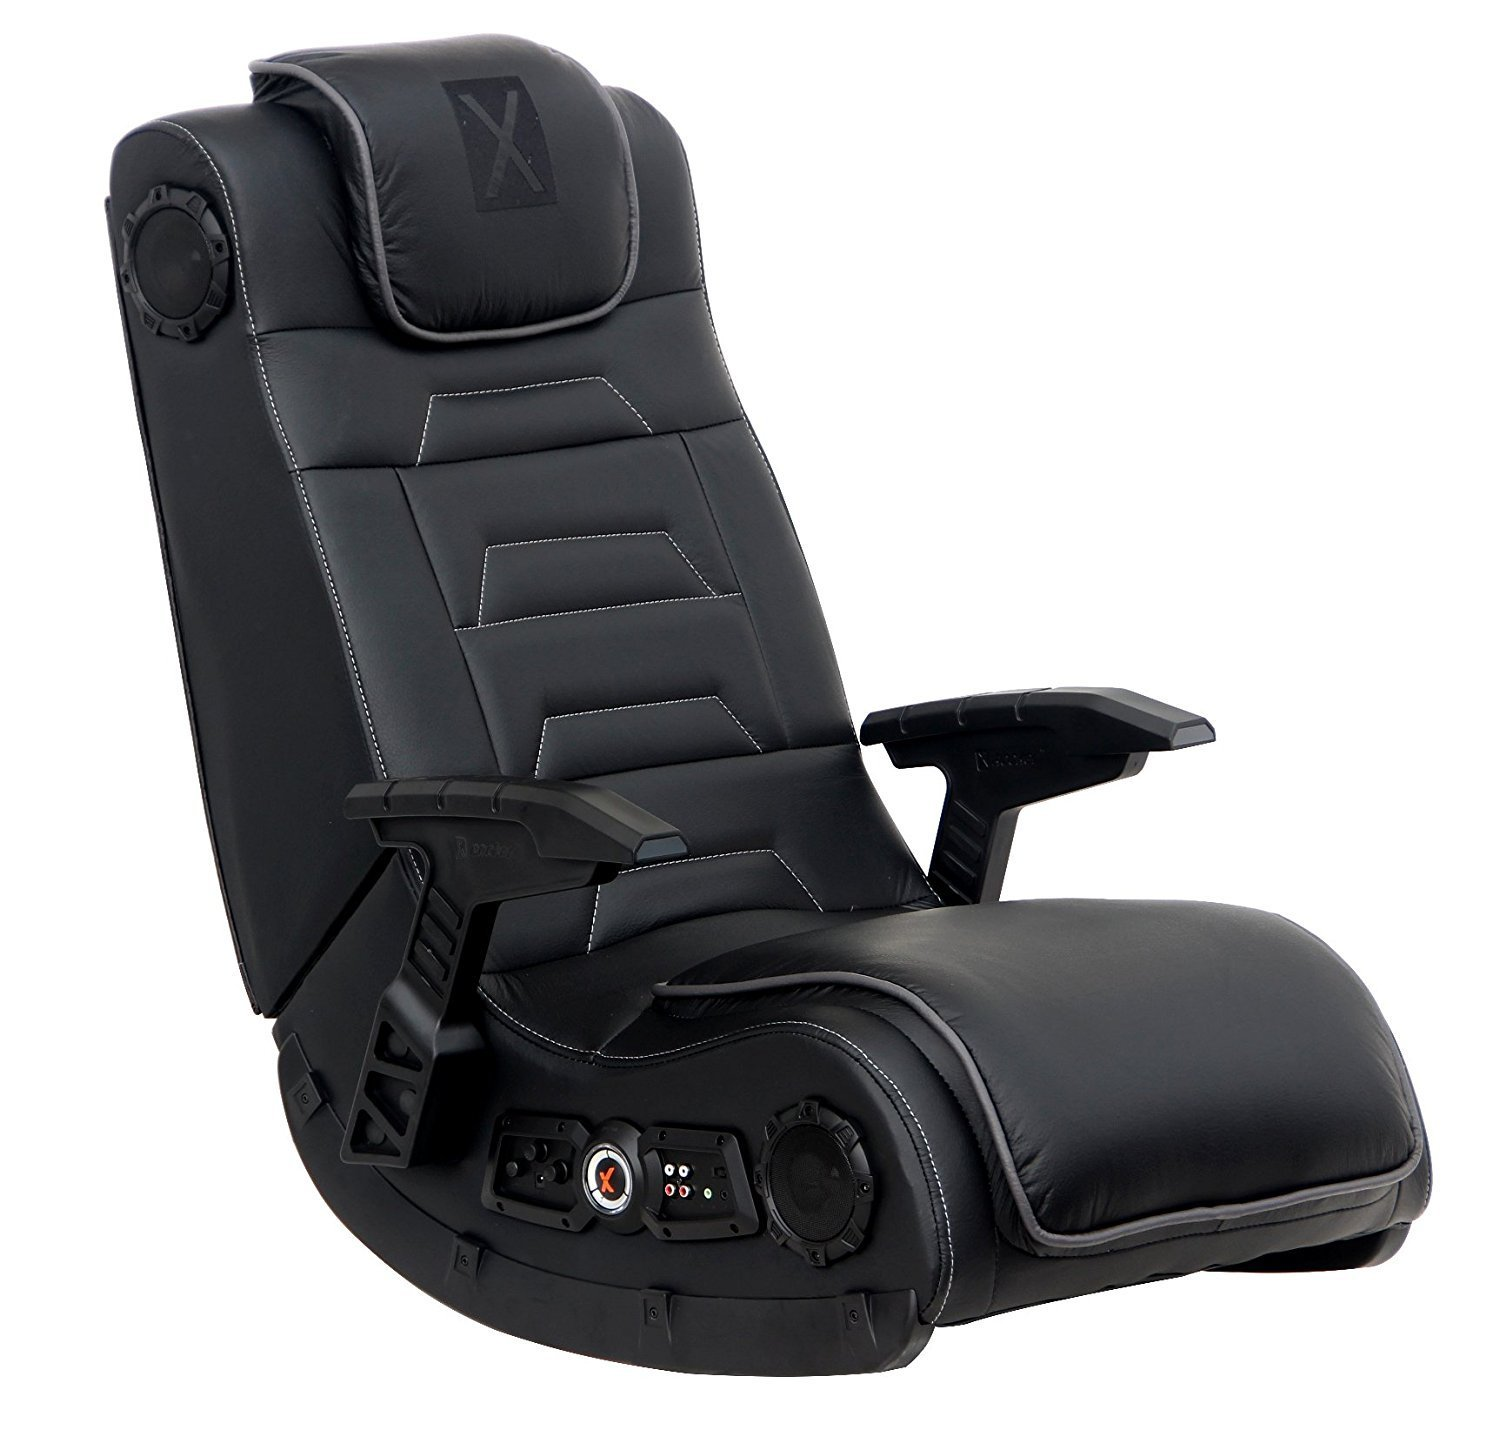 Console Gaming Chair Best Gaming Chairs Top 20 Pc Chairs To Buy In 2018